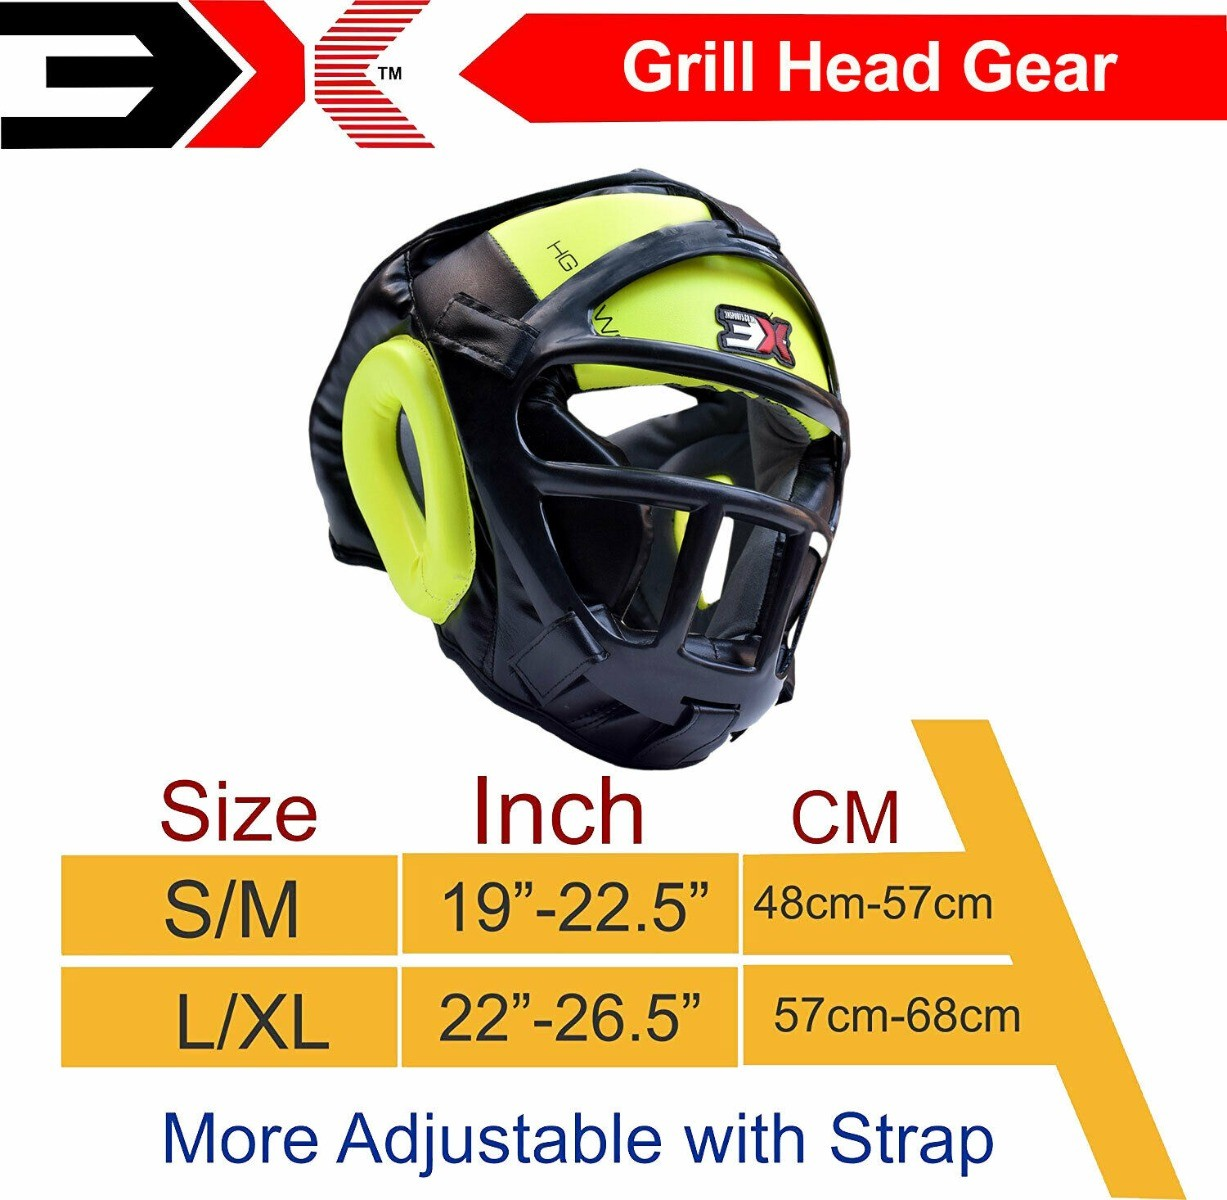 3X Sports Professional Choice HG-3X-13 Grill Head Guard(FLUORESCENT)-1413